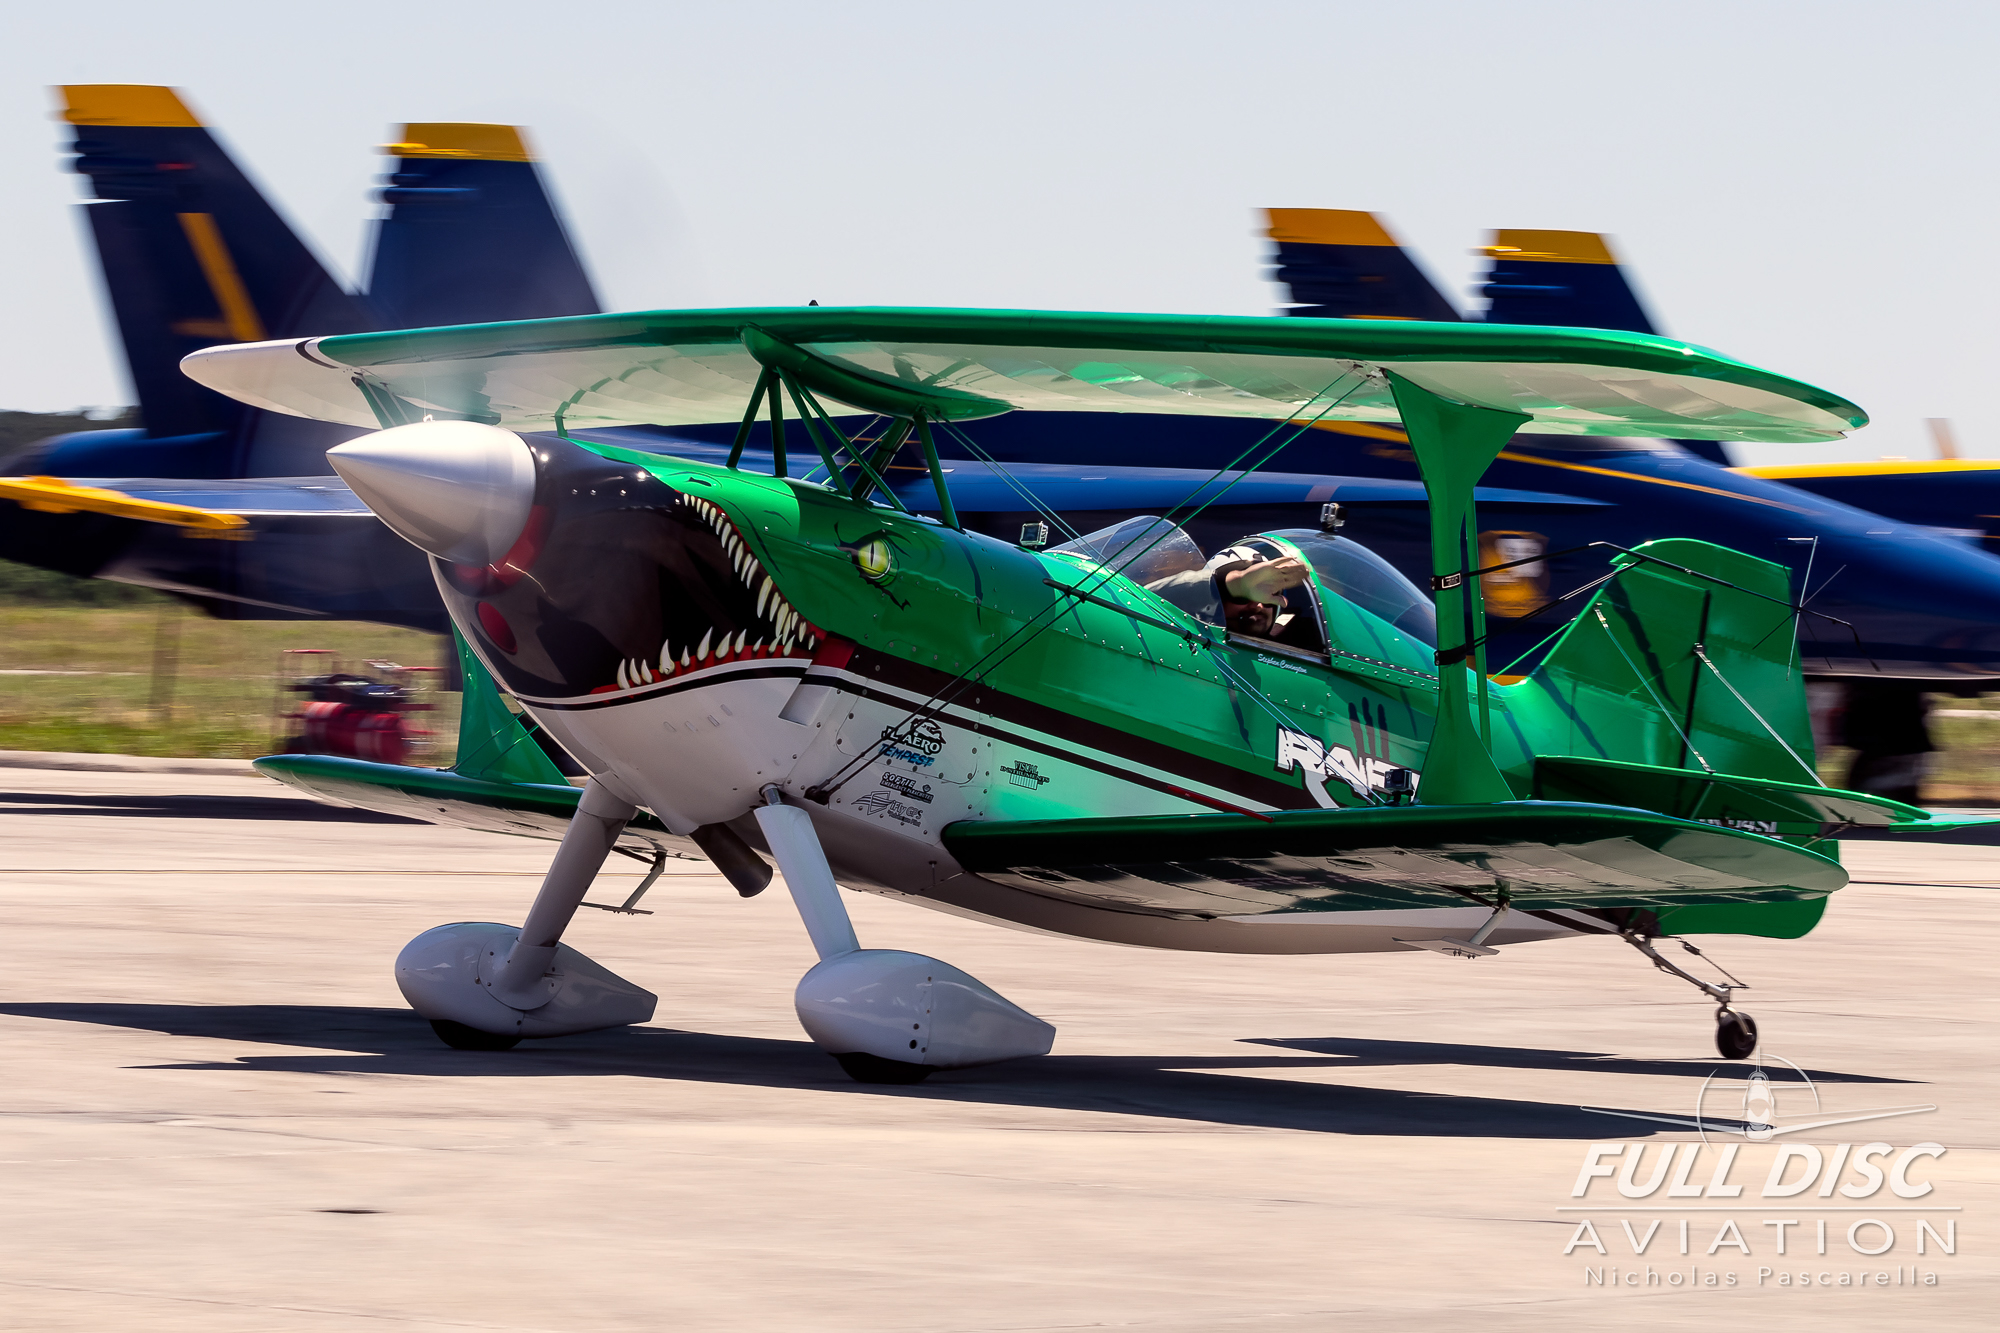 srcairshows_taxi_mcasbeaufort_nicholaspascarella_fulldiscavation_aviation_airshow.jpg